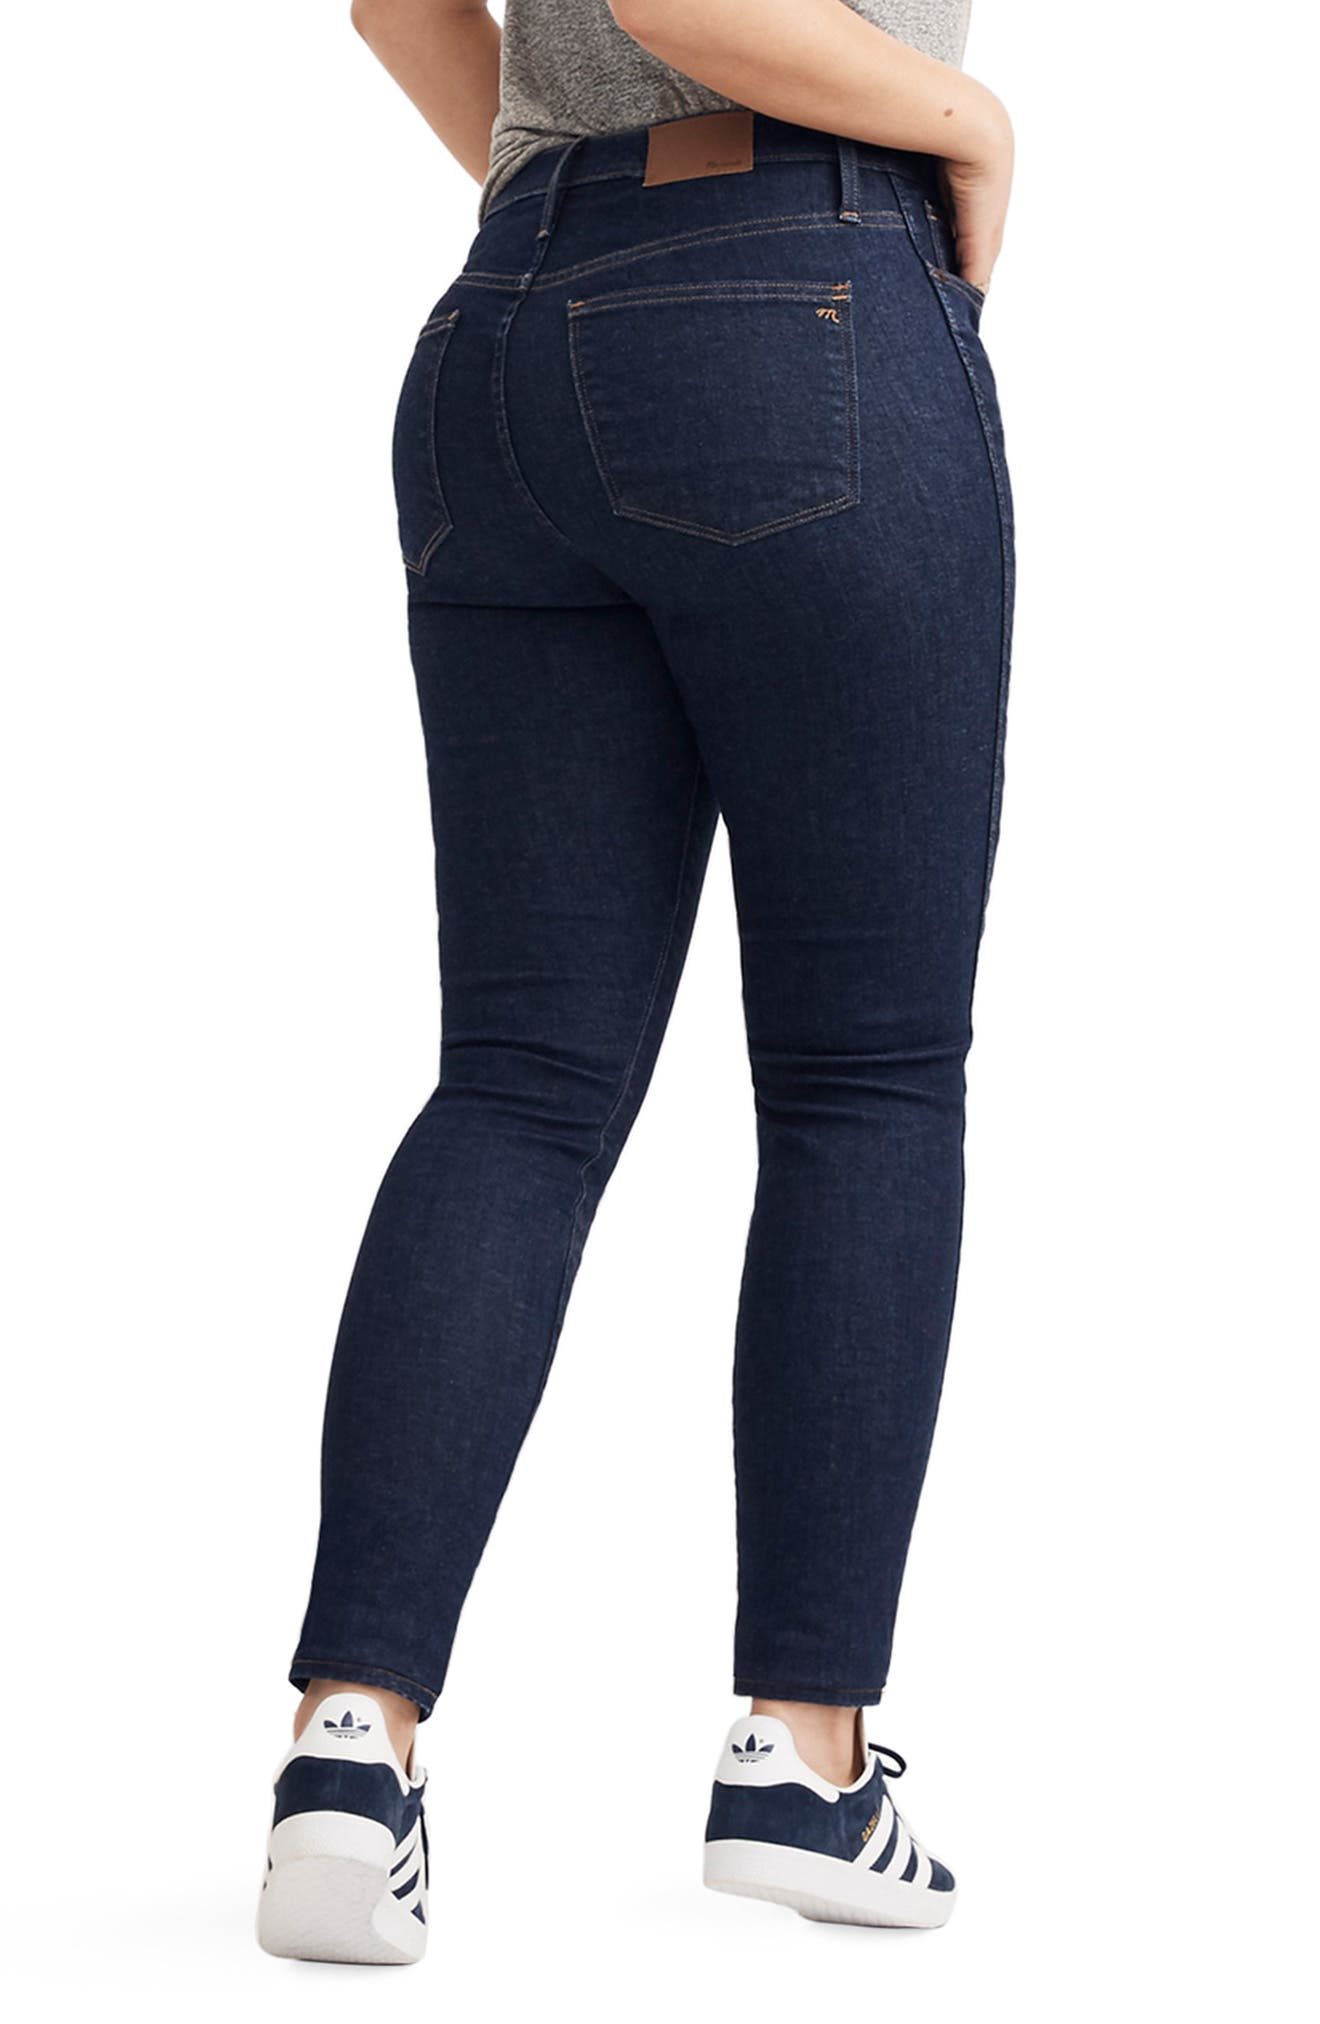 10-Inch High Waist Skinny Jeans,                             Alternate thumbnail 9, color,                             LUCILLE